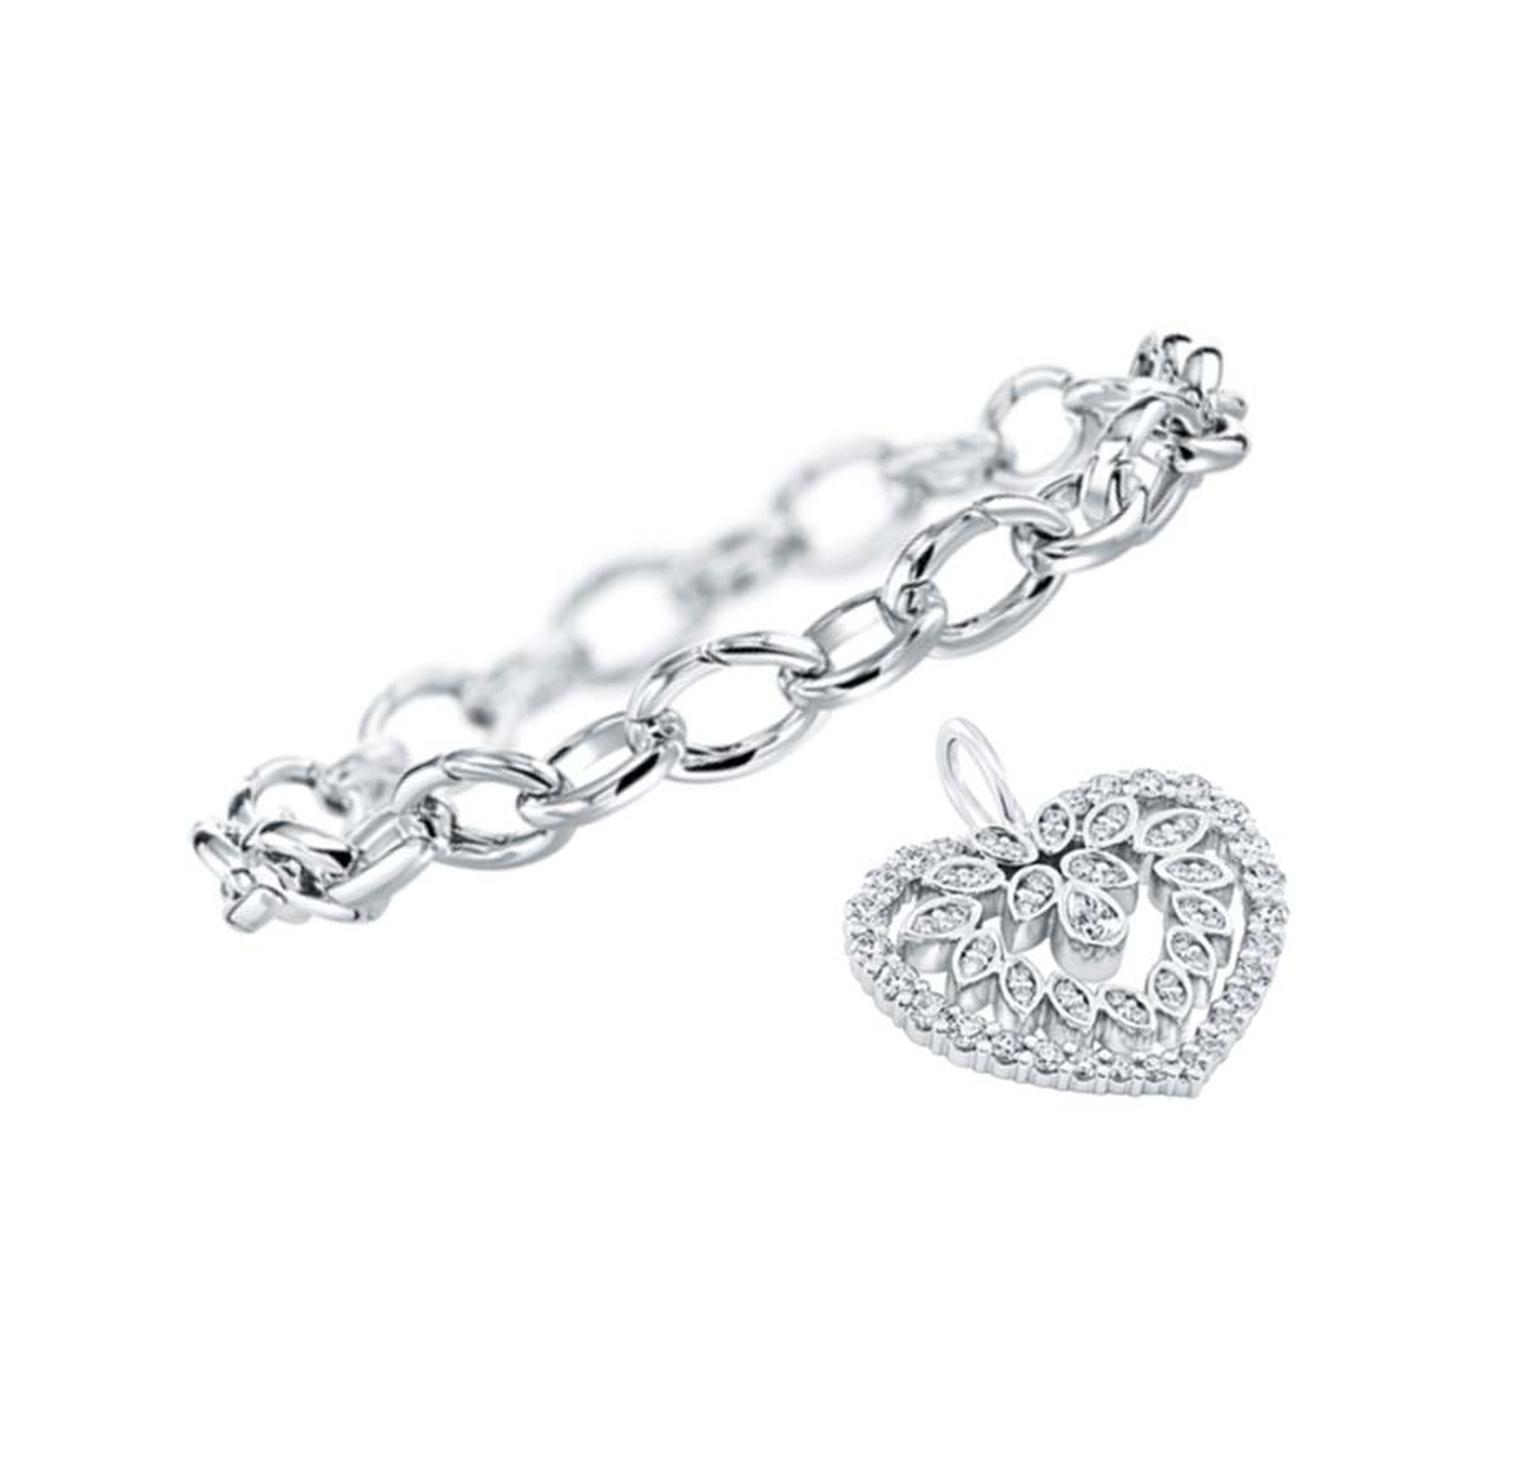 Harry Winston platinum link bracelet and diamond cluster heart, with 60 pear-shaped and round brilliant diamonds set in platinum.